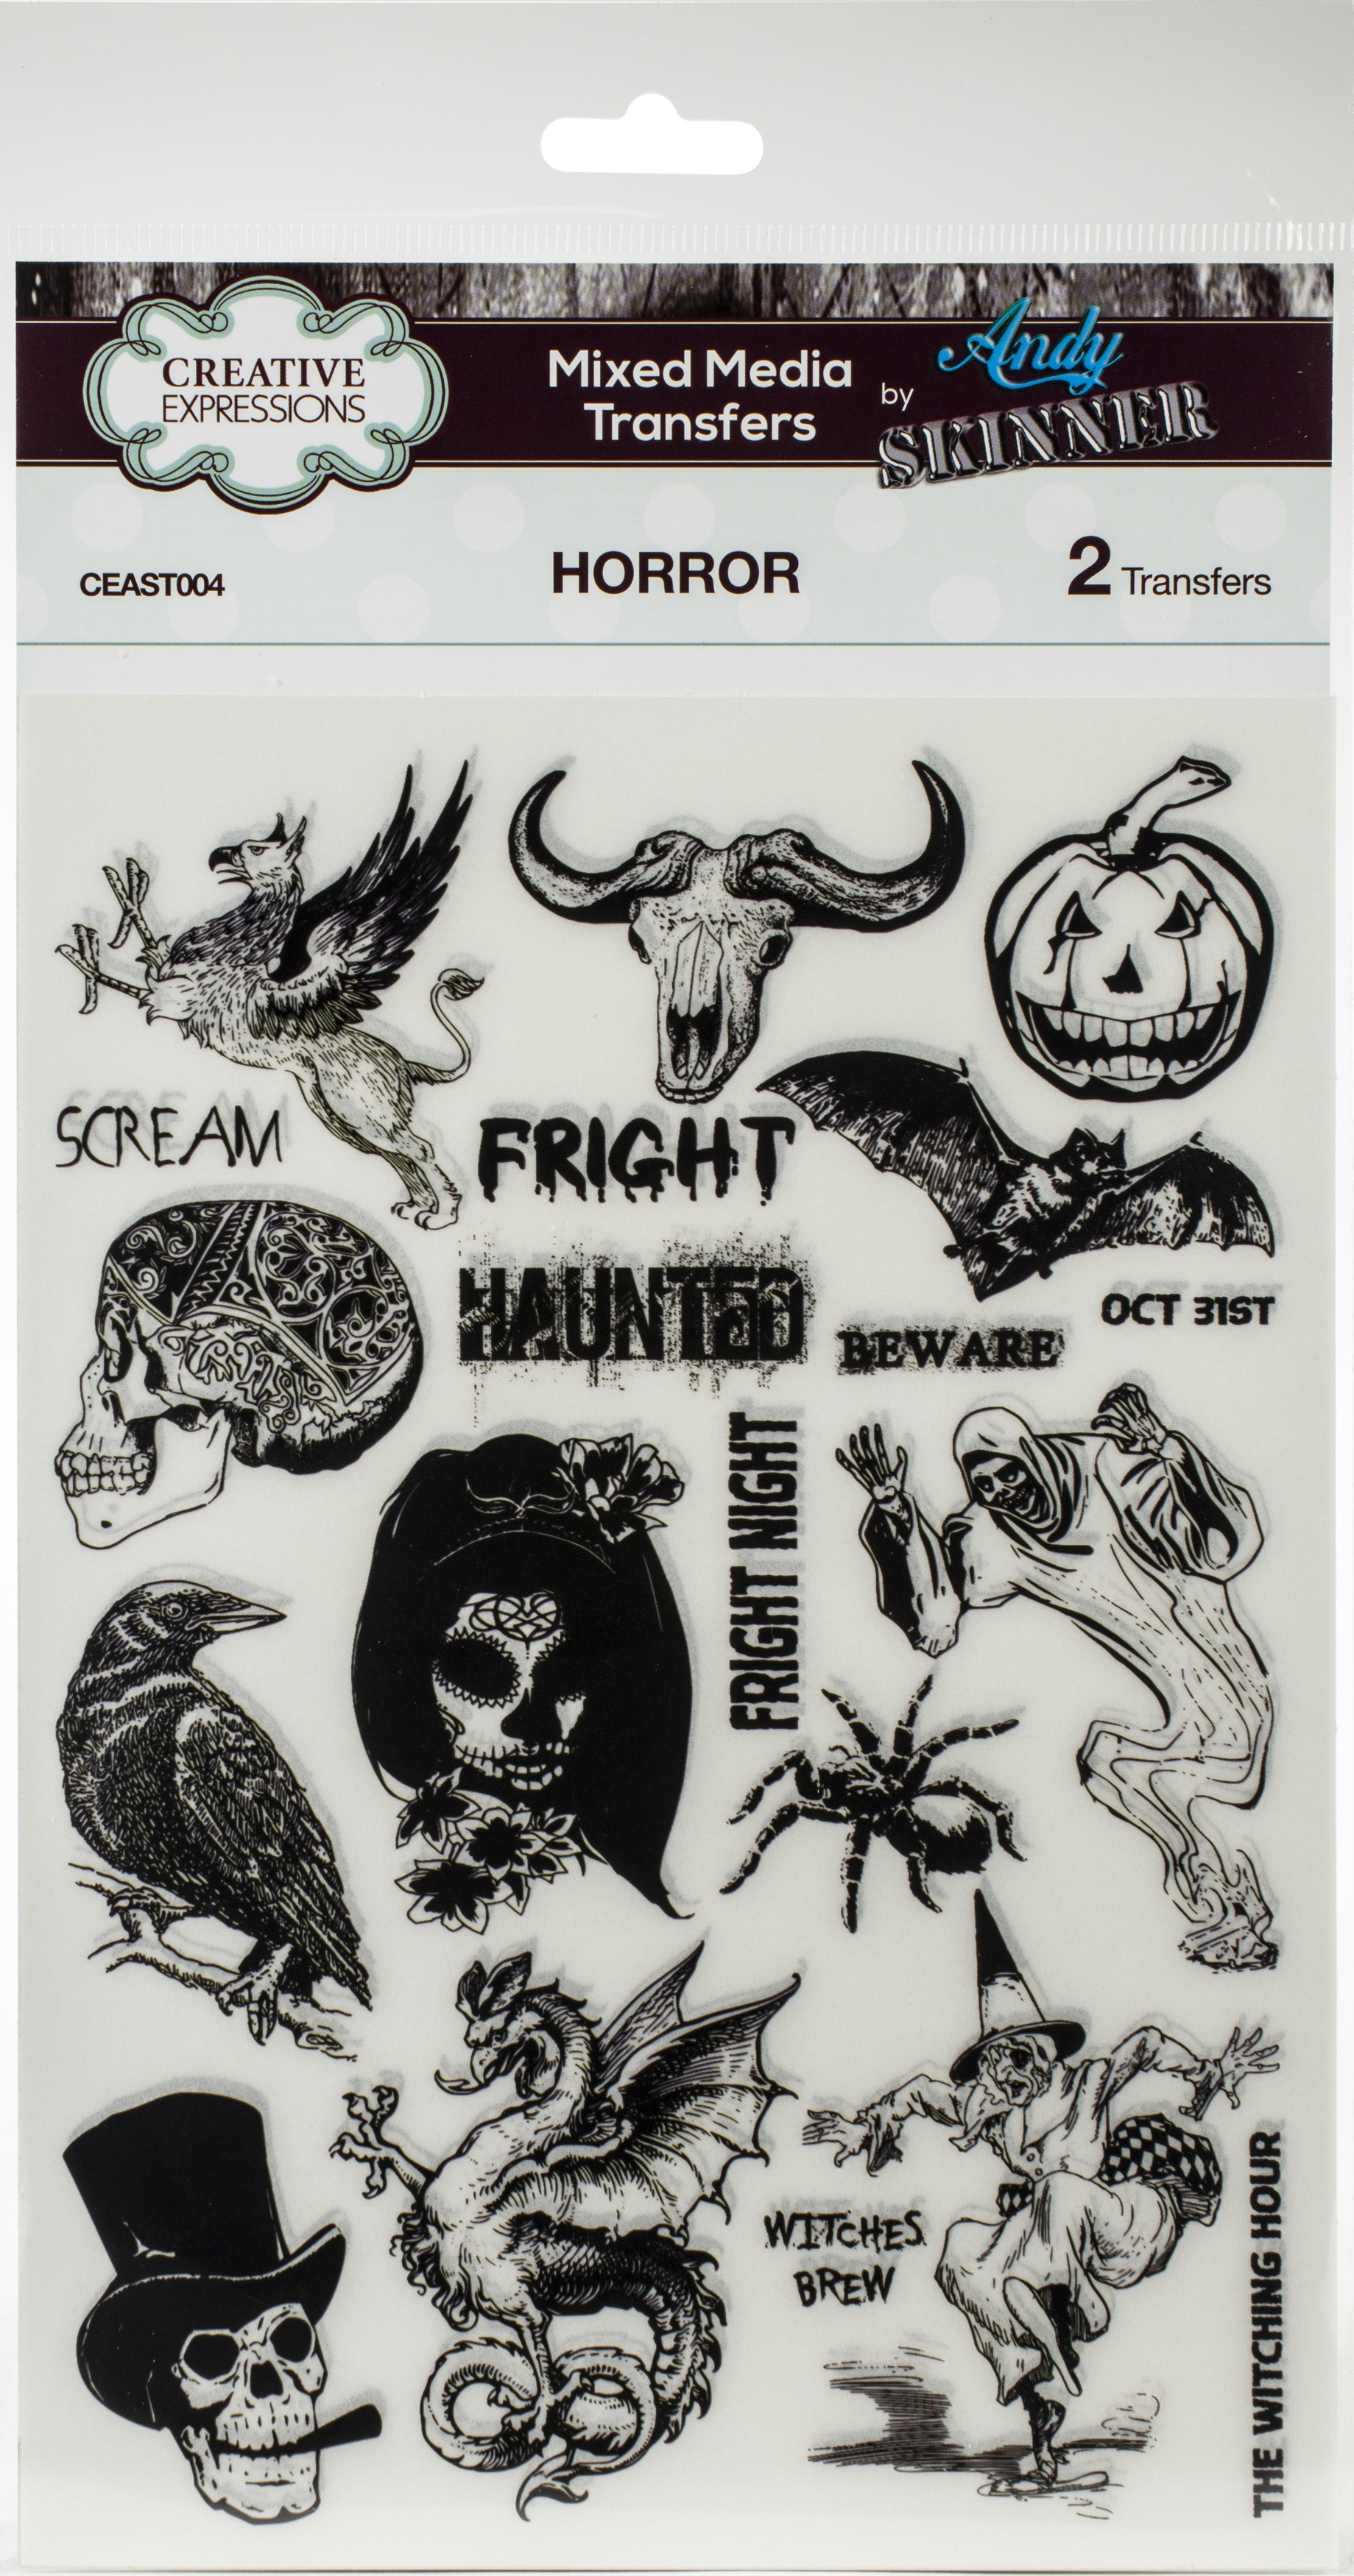 Creative Expressions Mixed Media Transfers By Andy Skinner-Horror